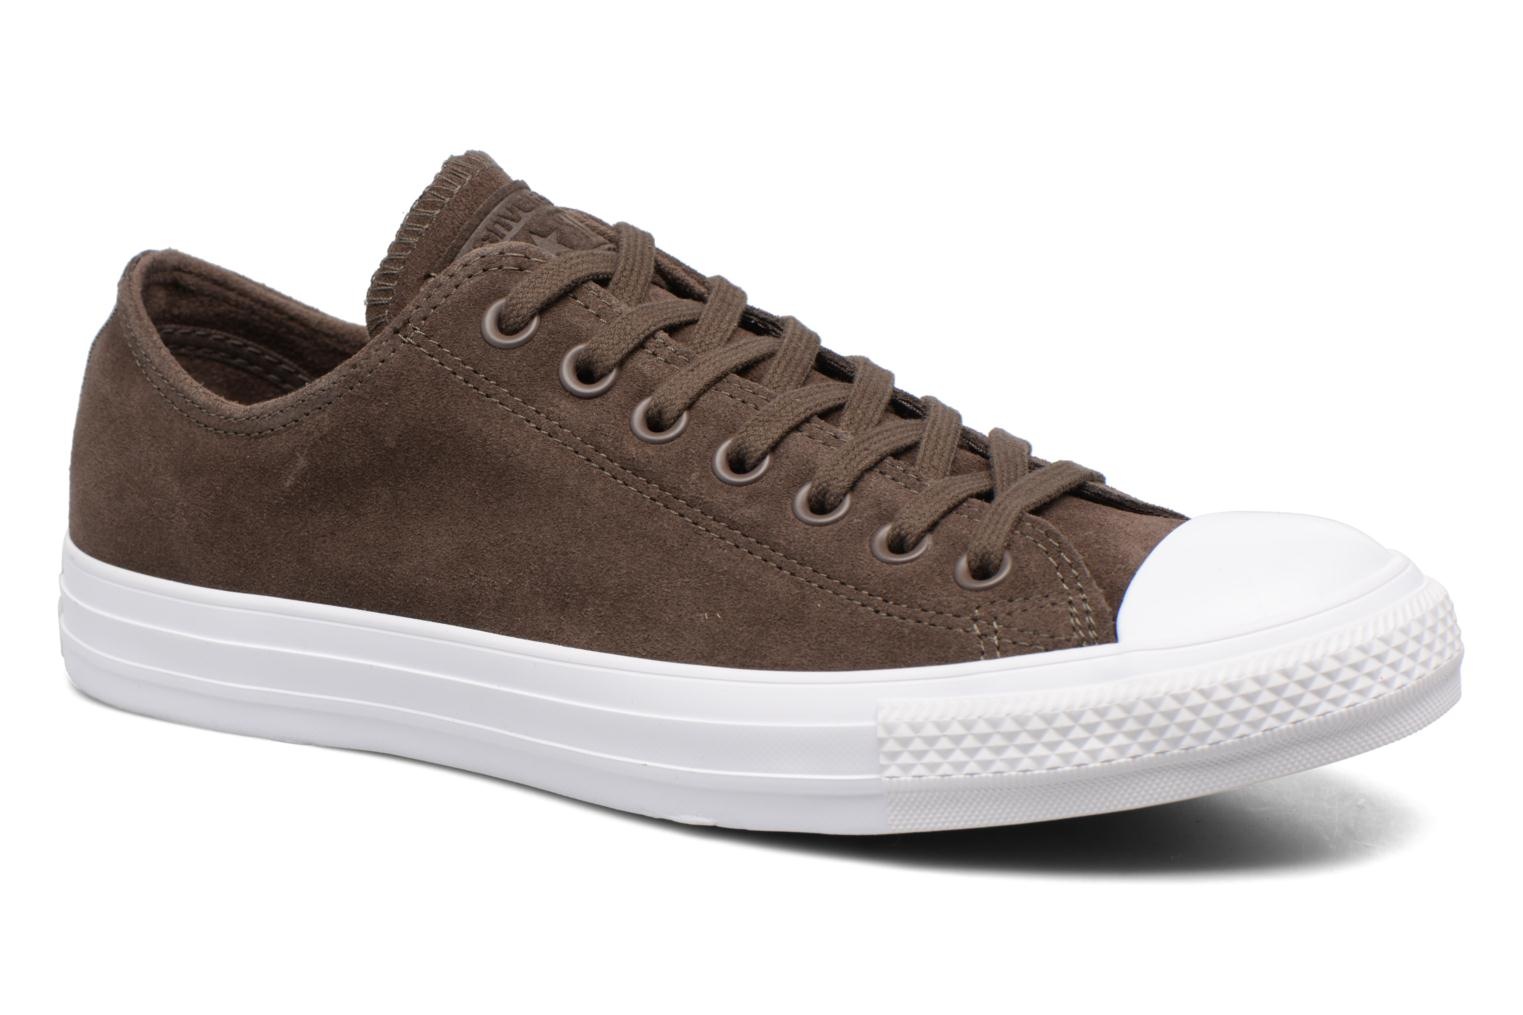 Baskets Converse Chuck Taylor All Star Plush Suede Ox Marron vue détail/paire